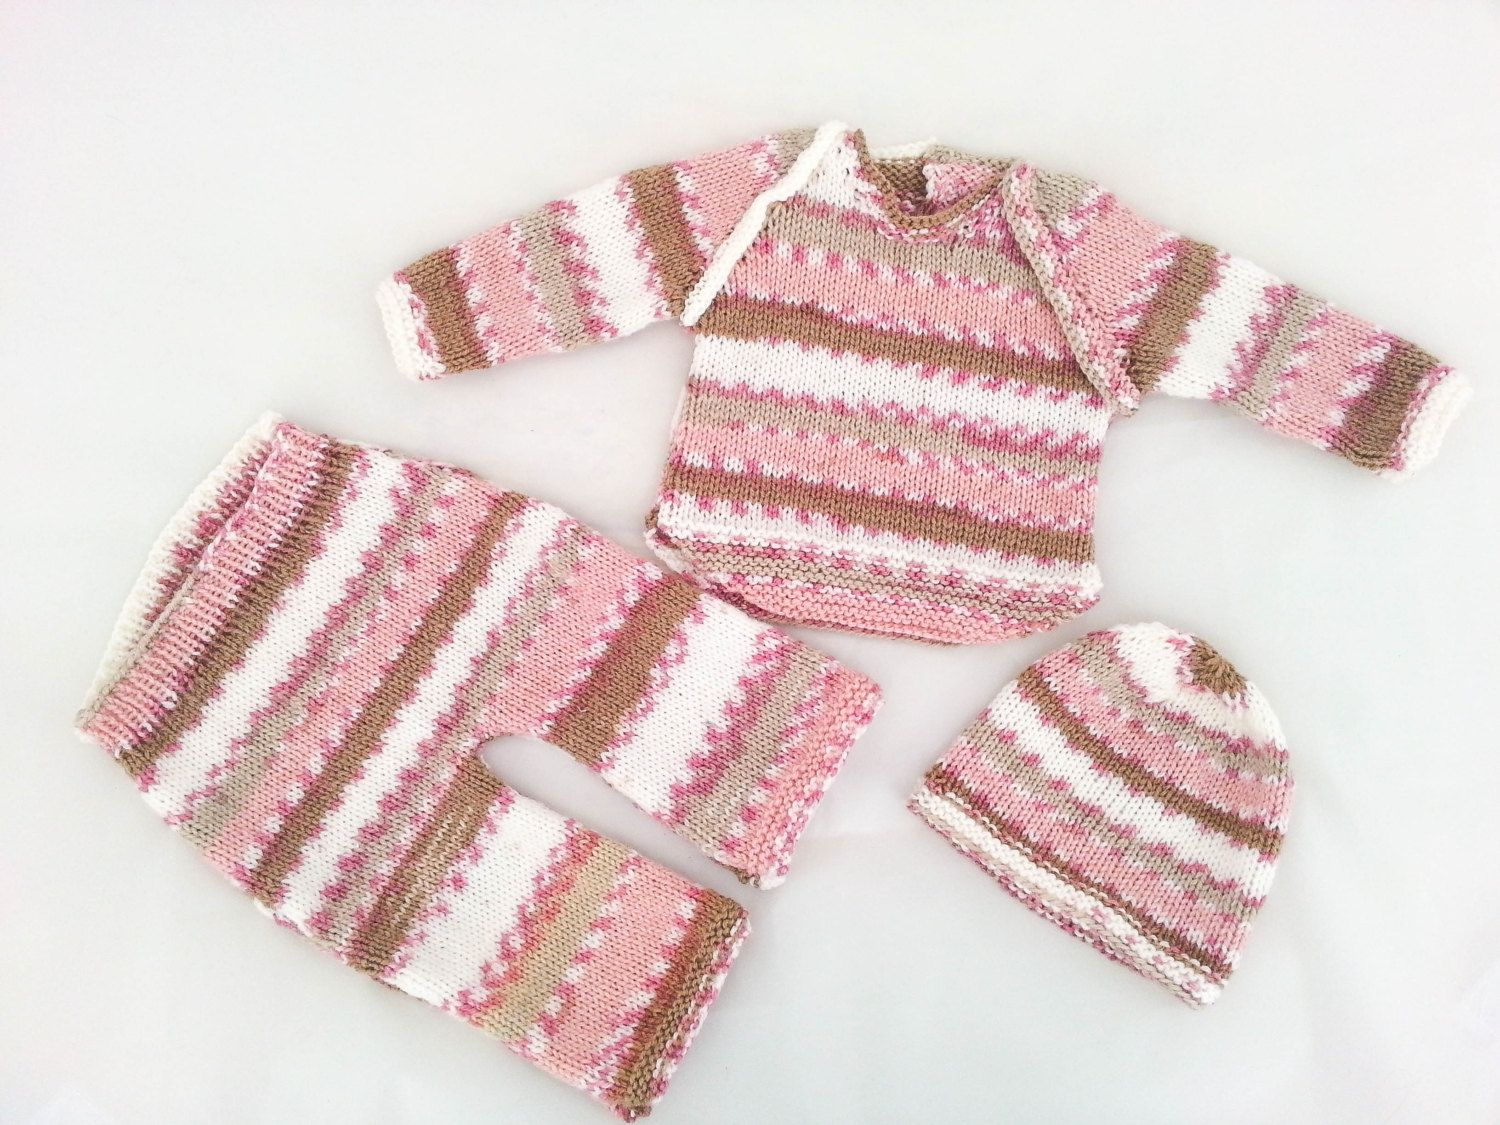 KNITTING PATTERN, Modern Layette, Baby Clothes, Set of 3, Sweater ...